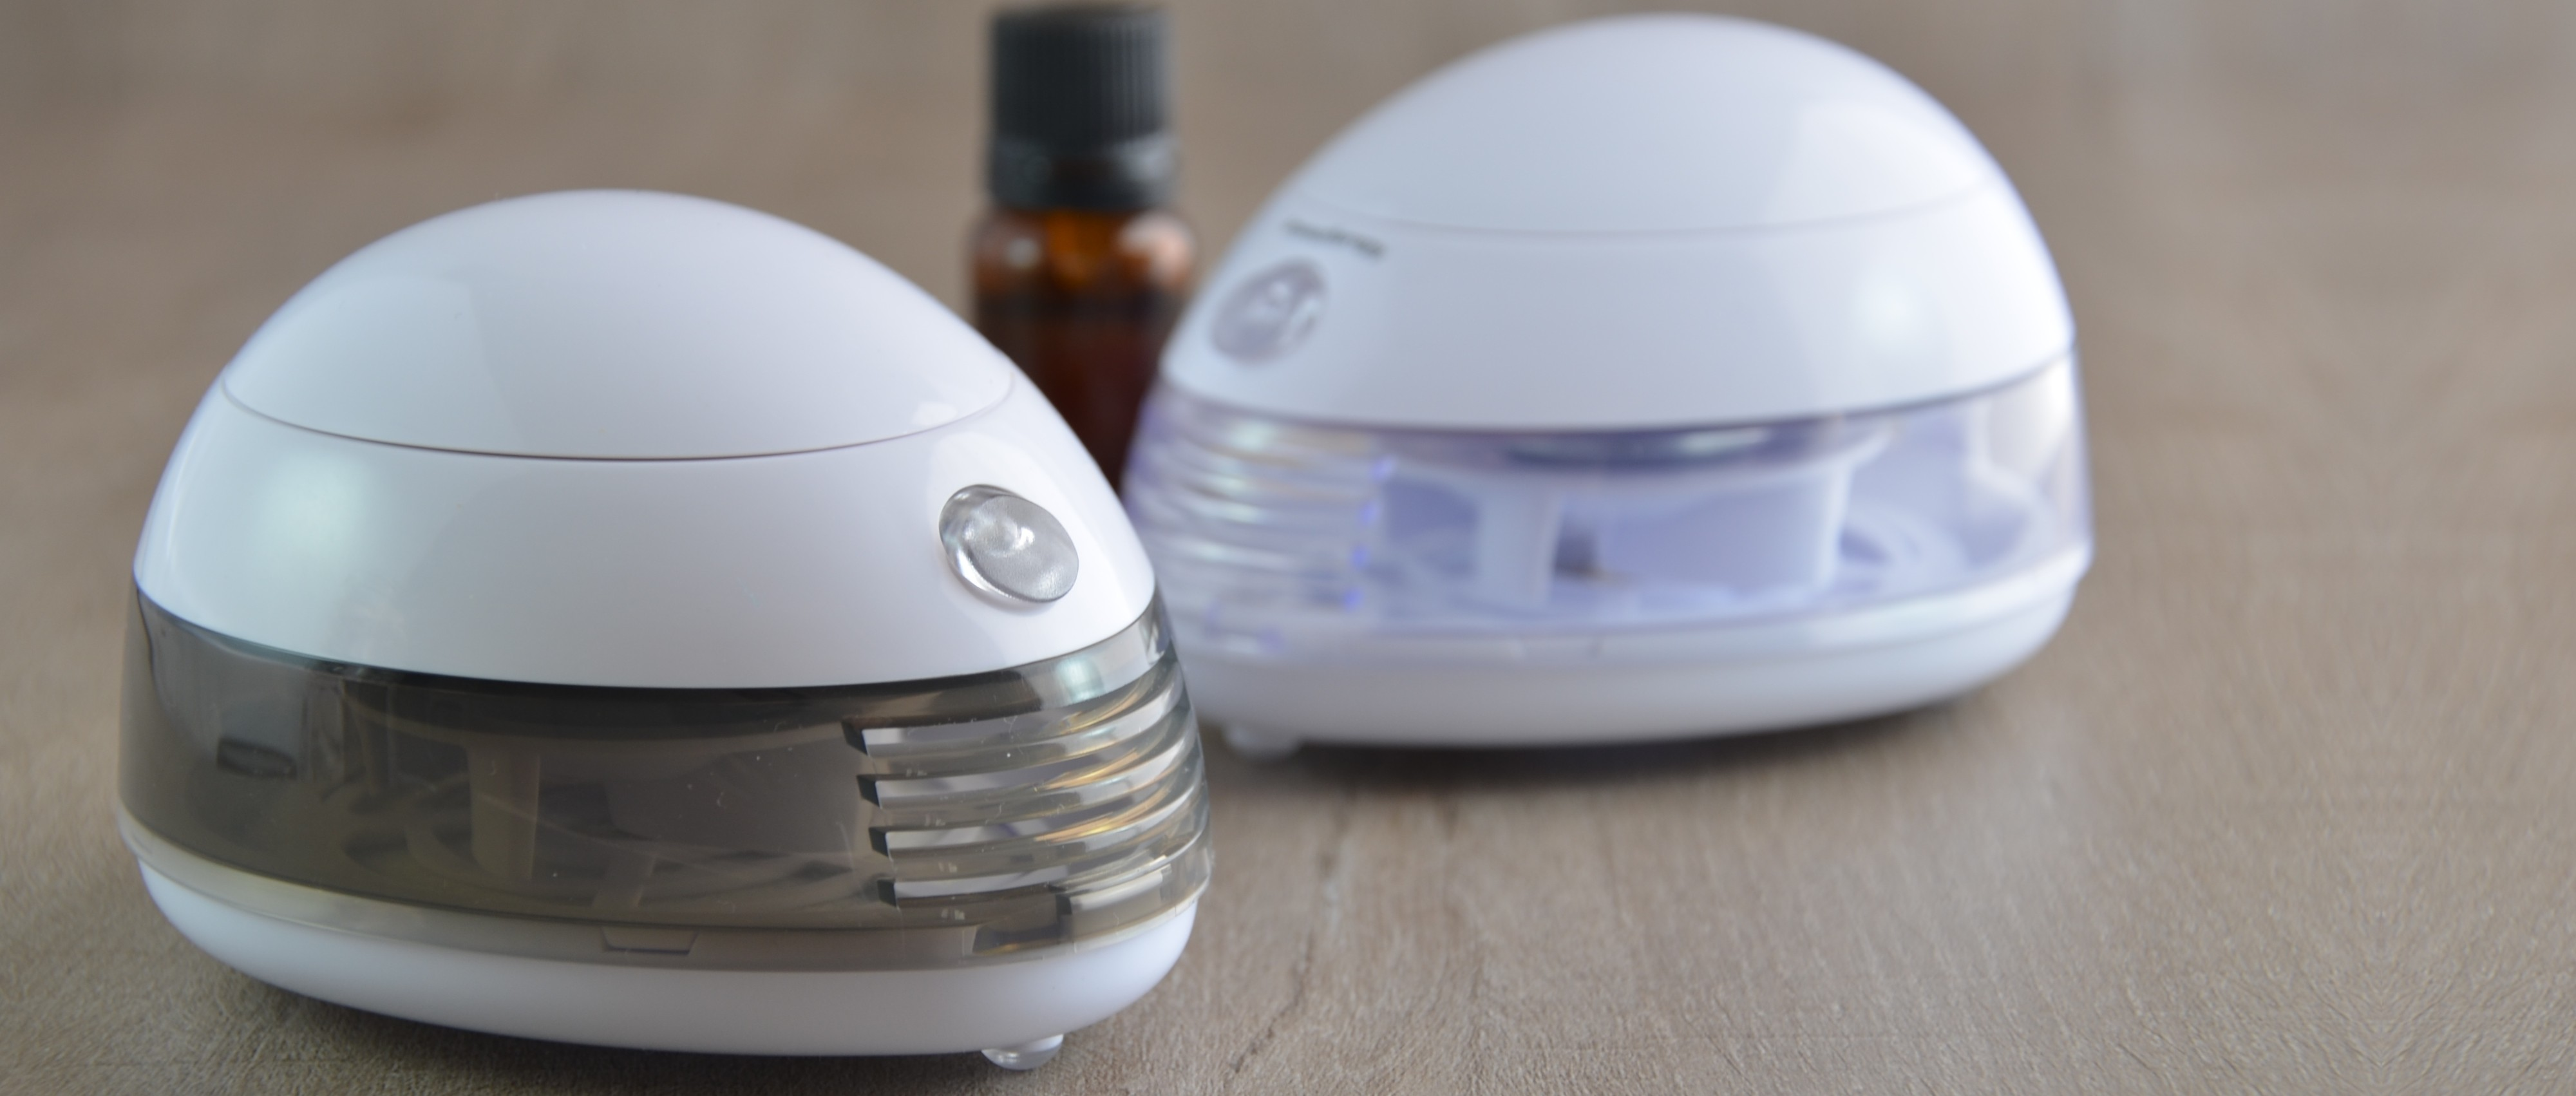 Essential Oils diffuser by ventilation